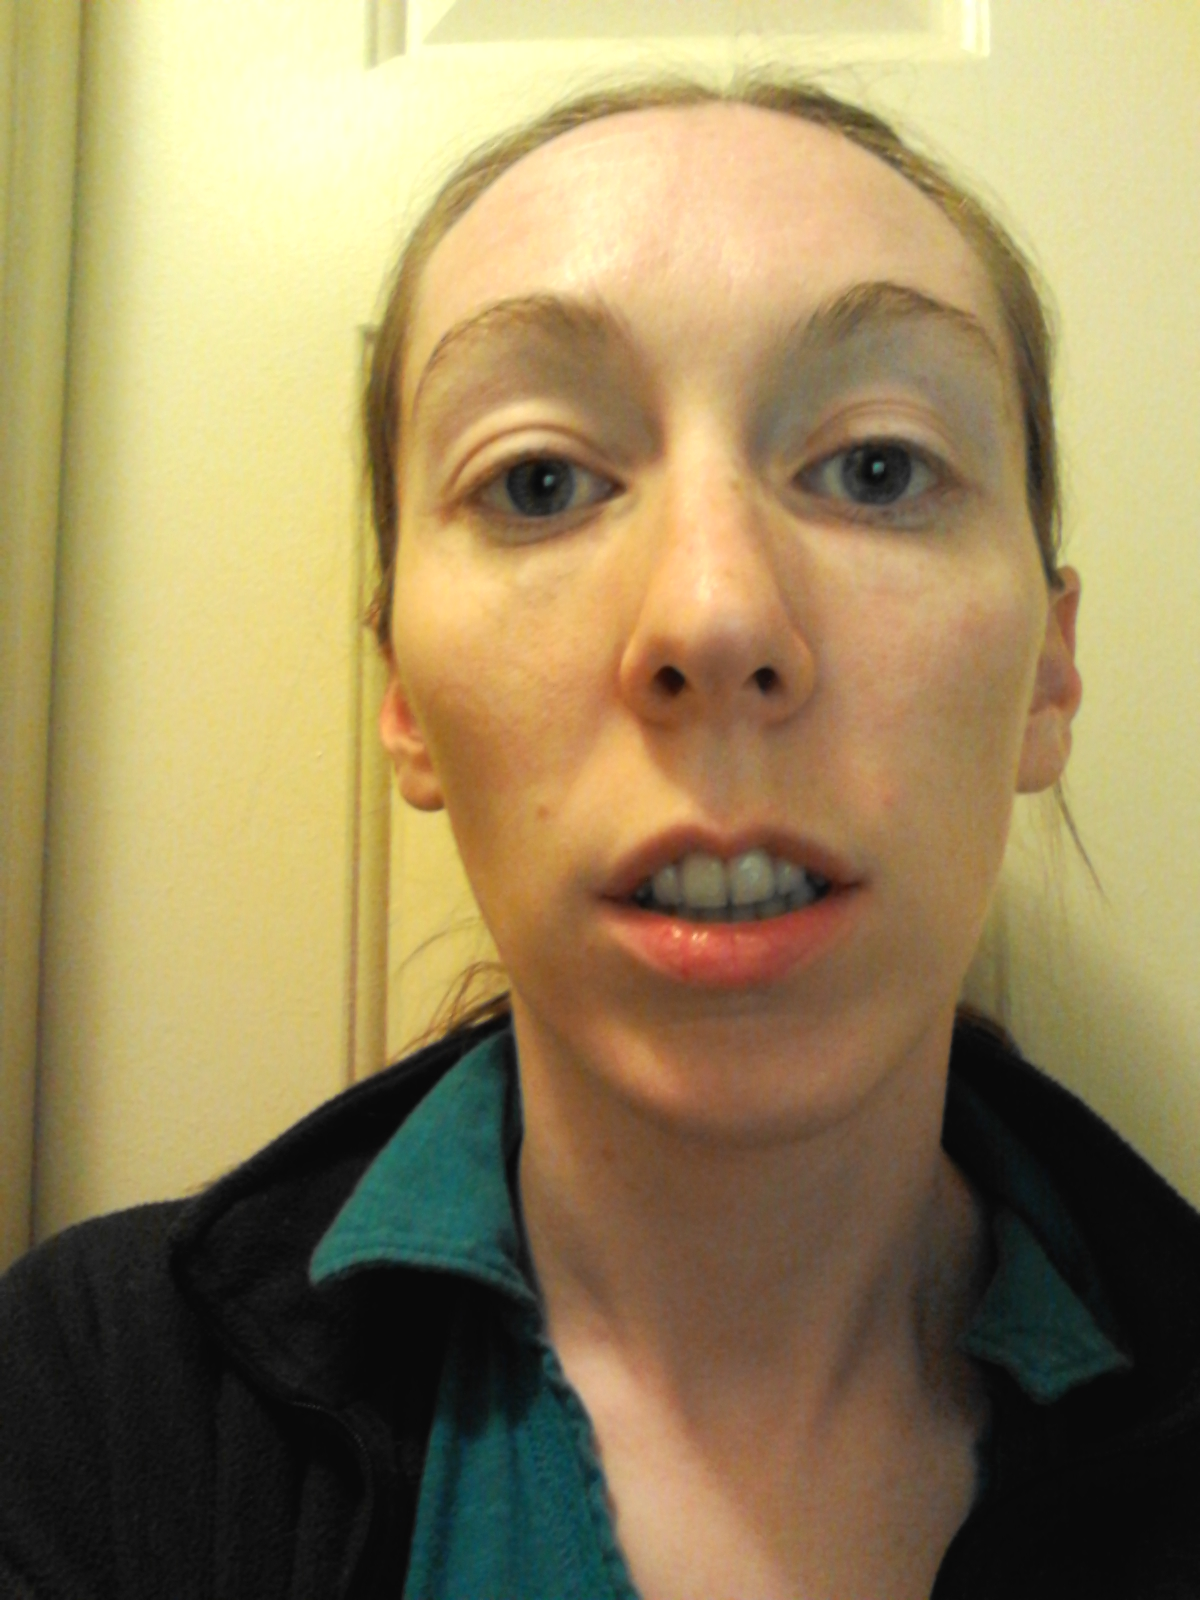 long face syndrome surgery becky s upper jaw surgery blog